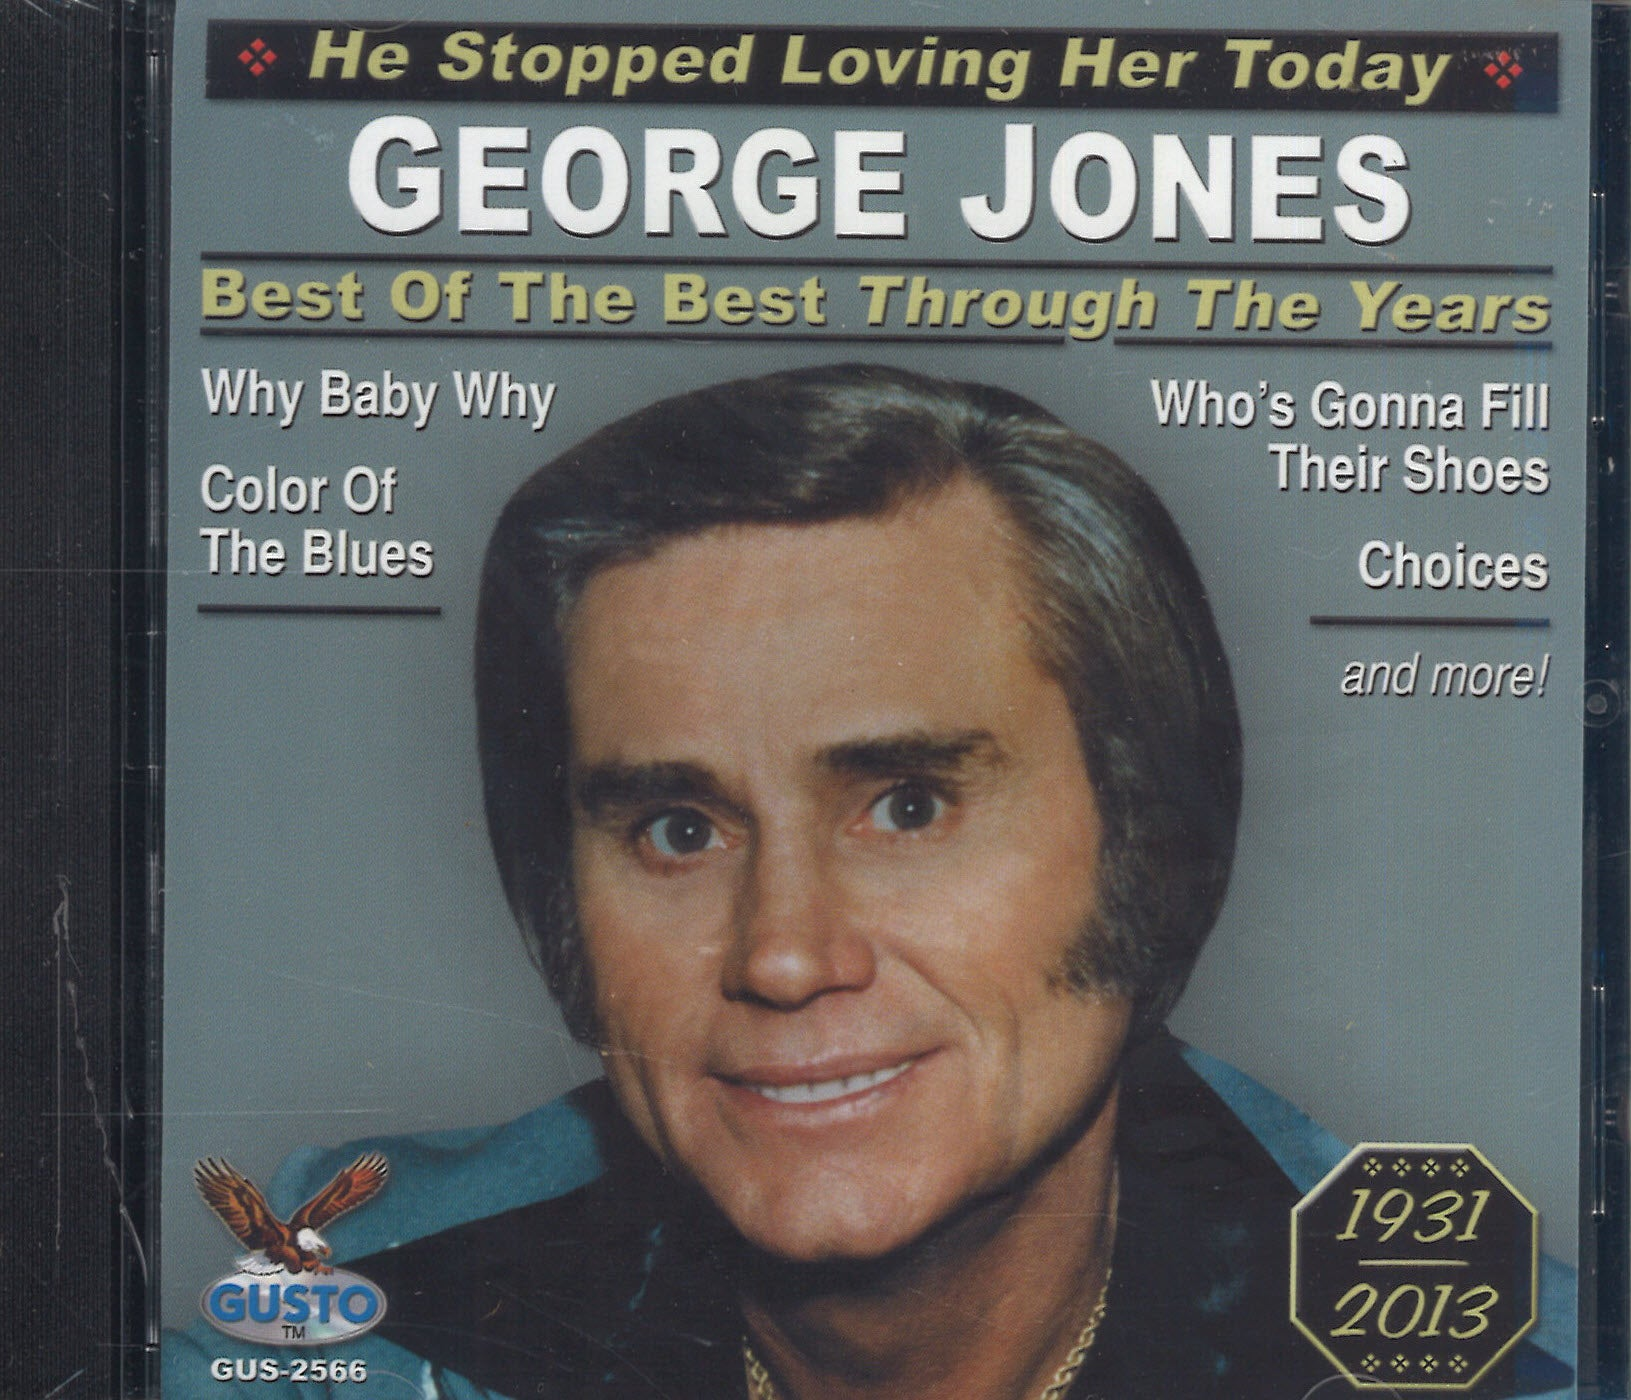 George Jones Best Of The Best Through The Years